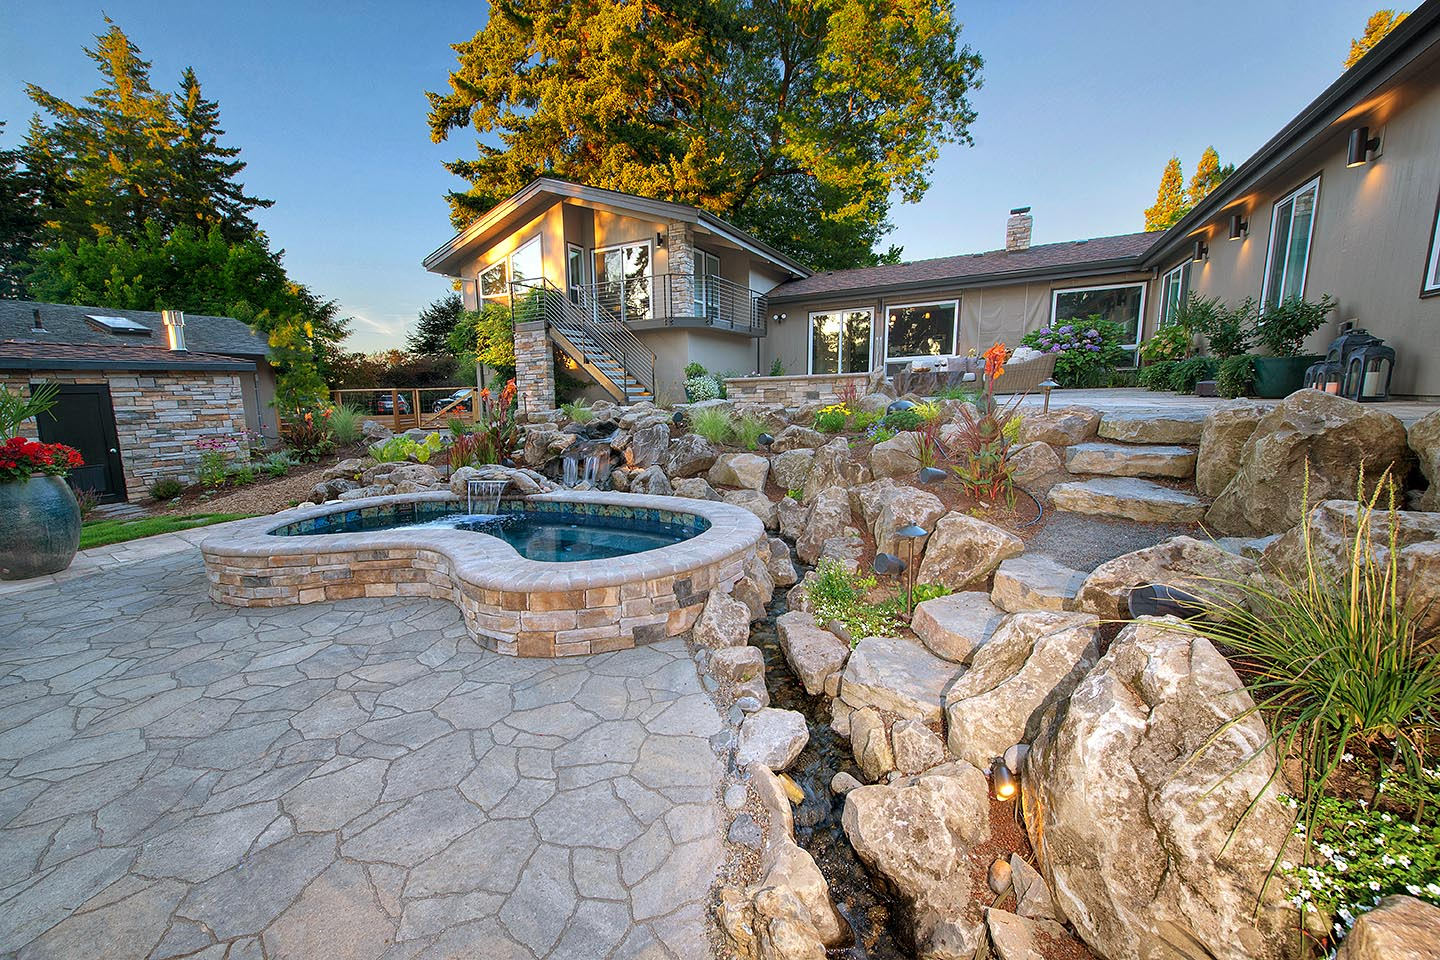 In-ground custom built spa with water feature flowing through landscape